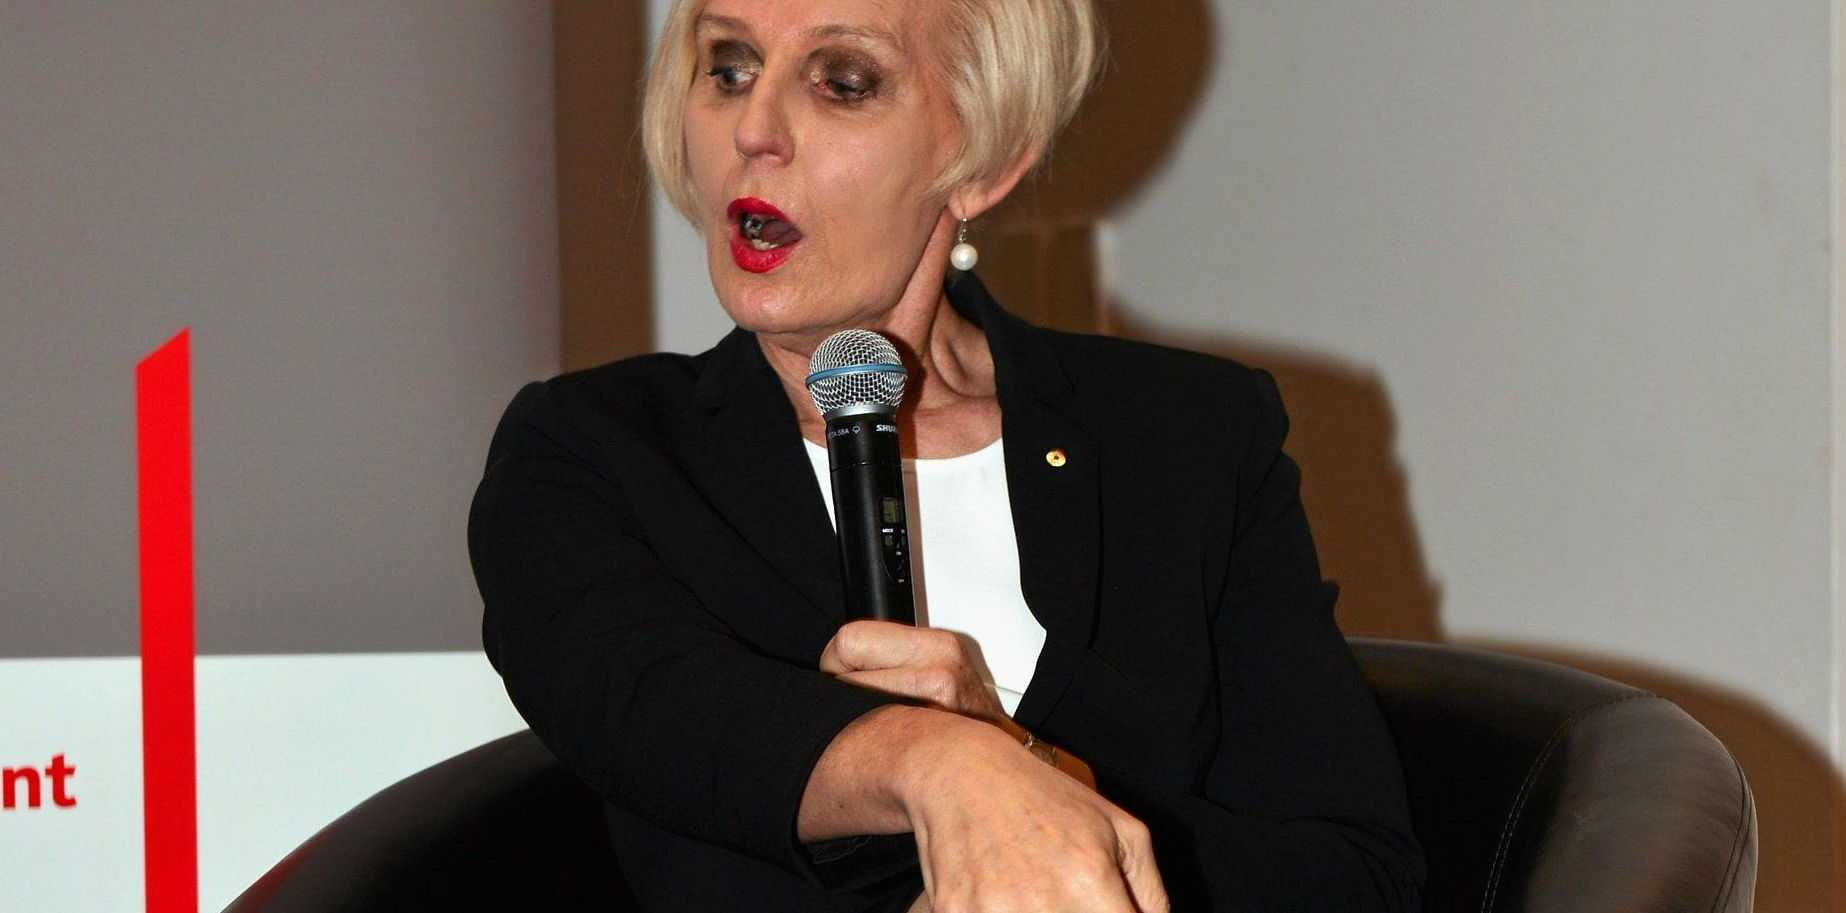 Catherine McGregor speaking at the AICD event at Novotel Twin Waters Resort on Tuesday, April 19, 2016.